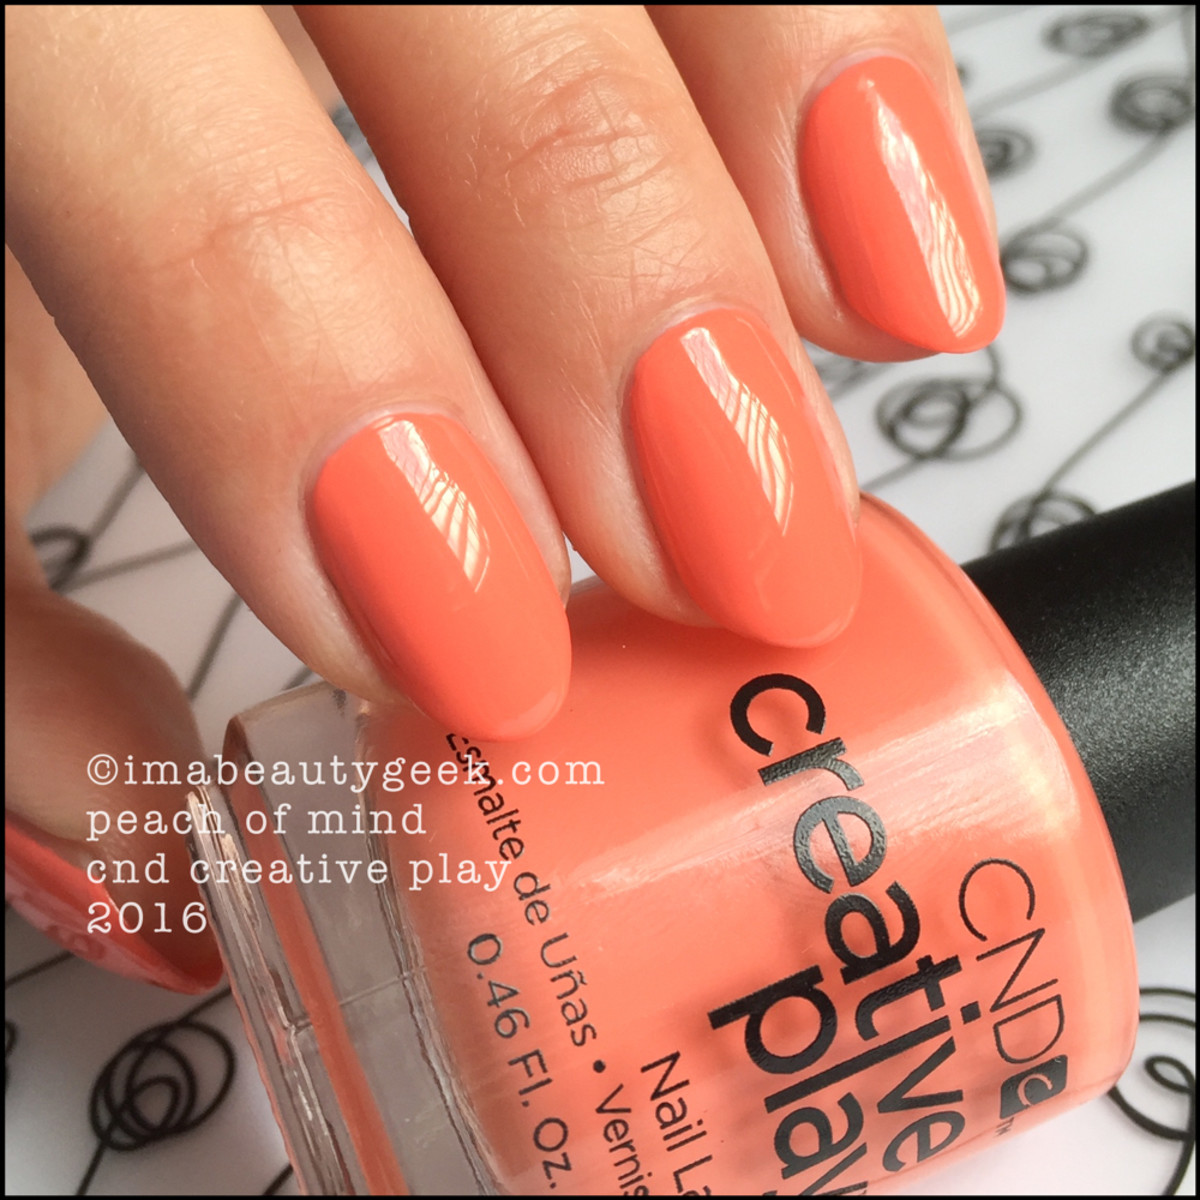 CND Creative Play Peach of Mind_CND Creative Play Nail Polish Swatches